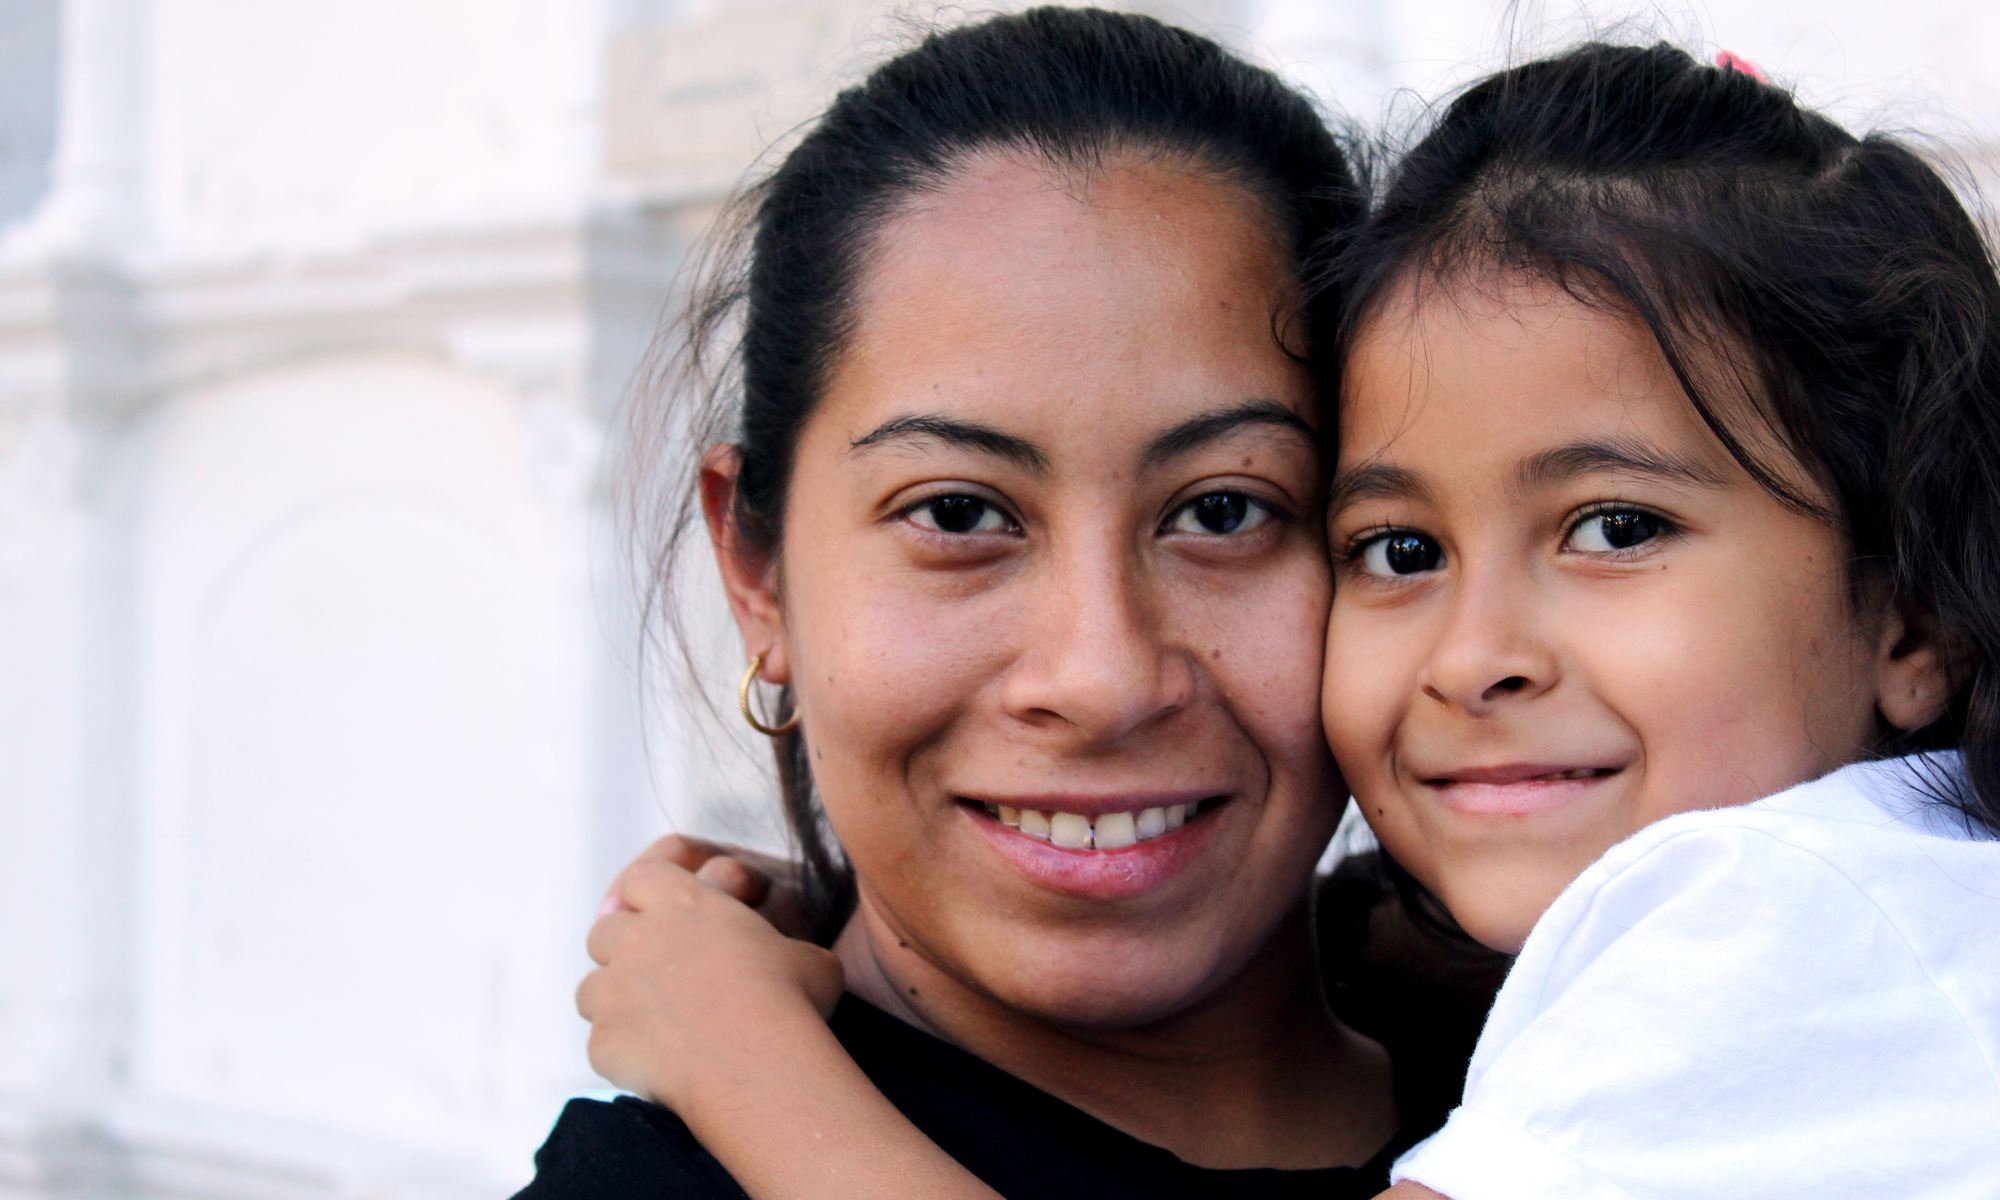 Hispanic immigrant mother holding daughter in her arms